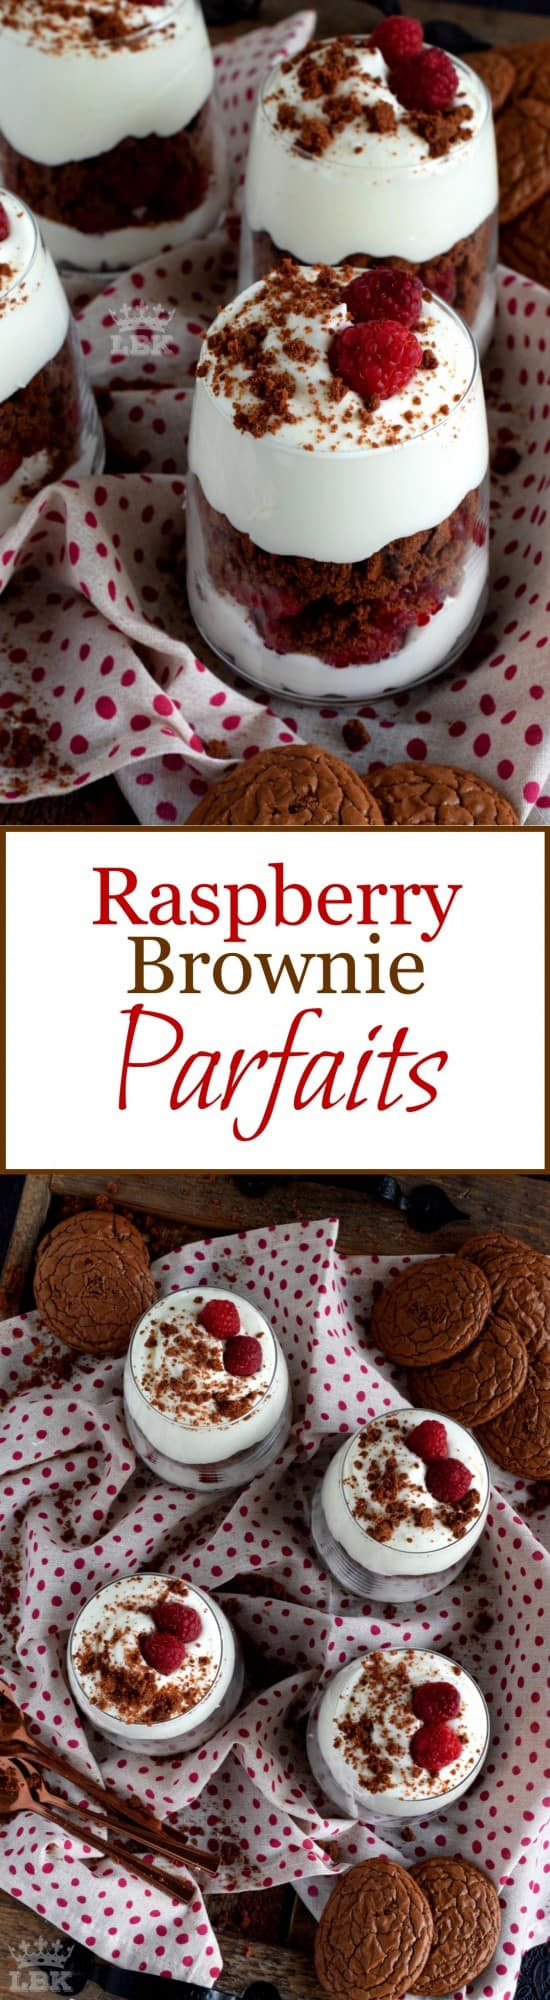 Raspberry Brownie Parfaits